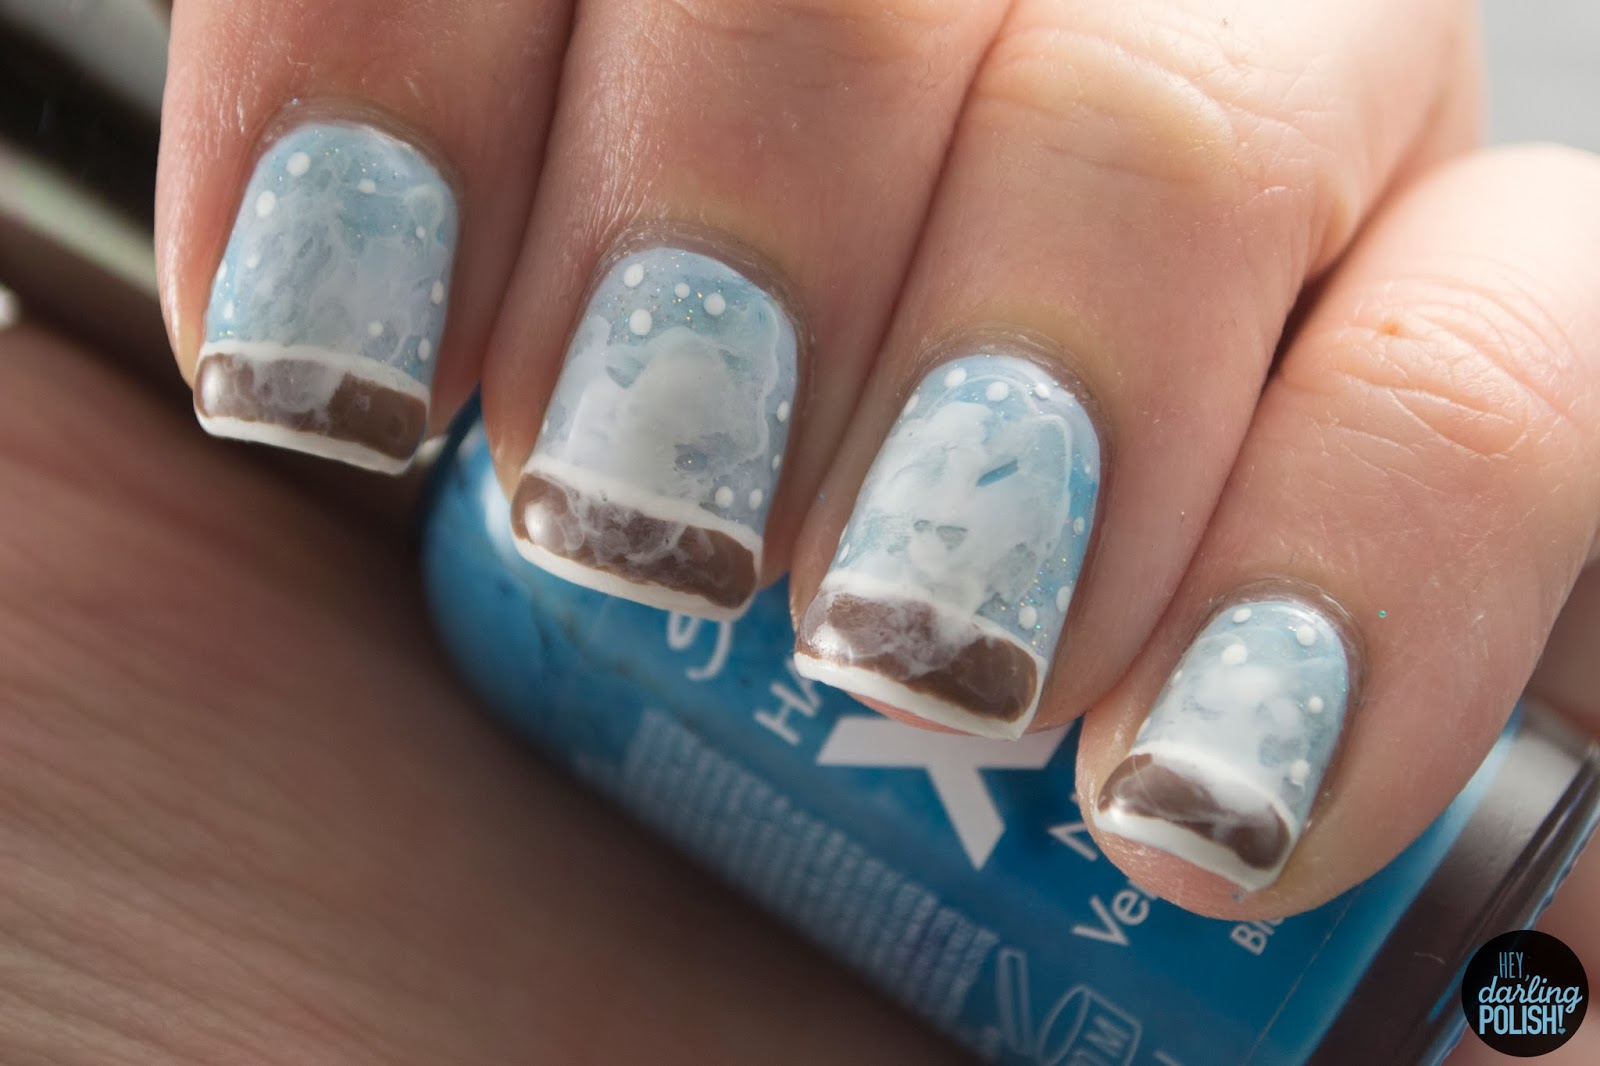 Coffee Art Nails Hey Darling Polish Nail Art A Go Go Day 21 Snow Day